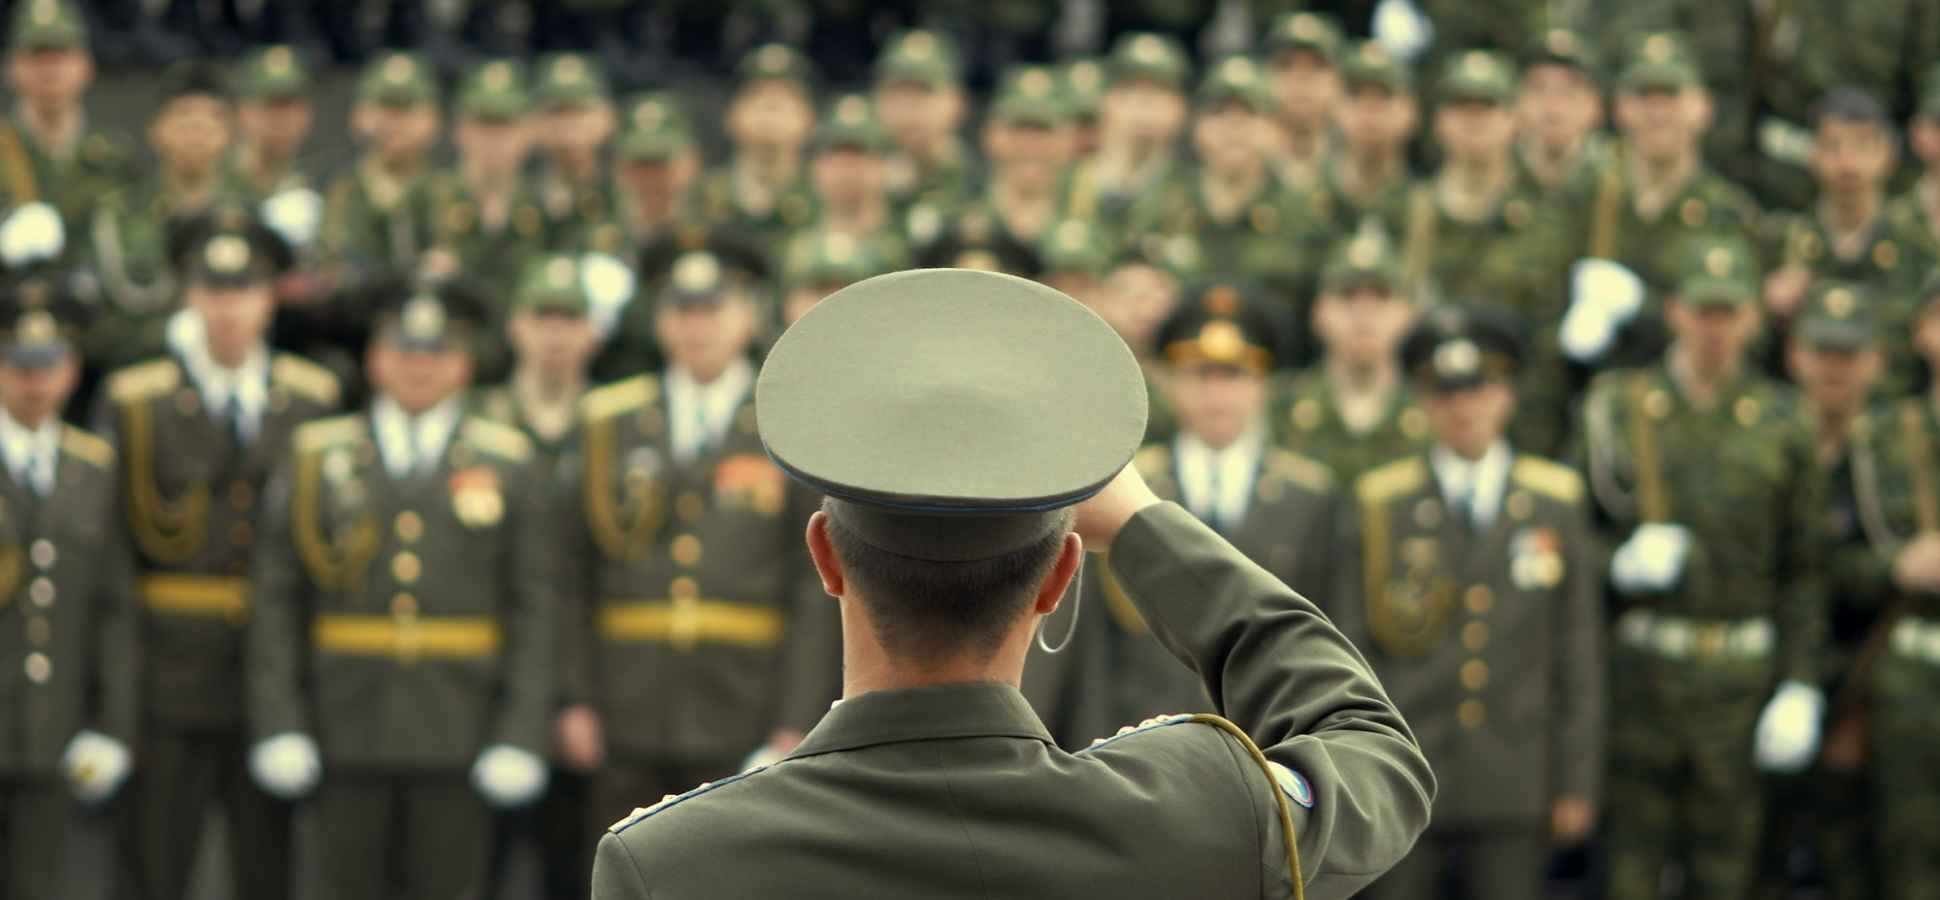 How to Lead by Example, According to 4 Military Veterans